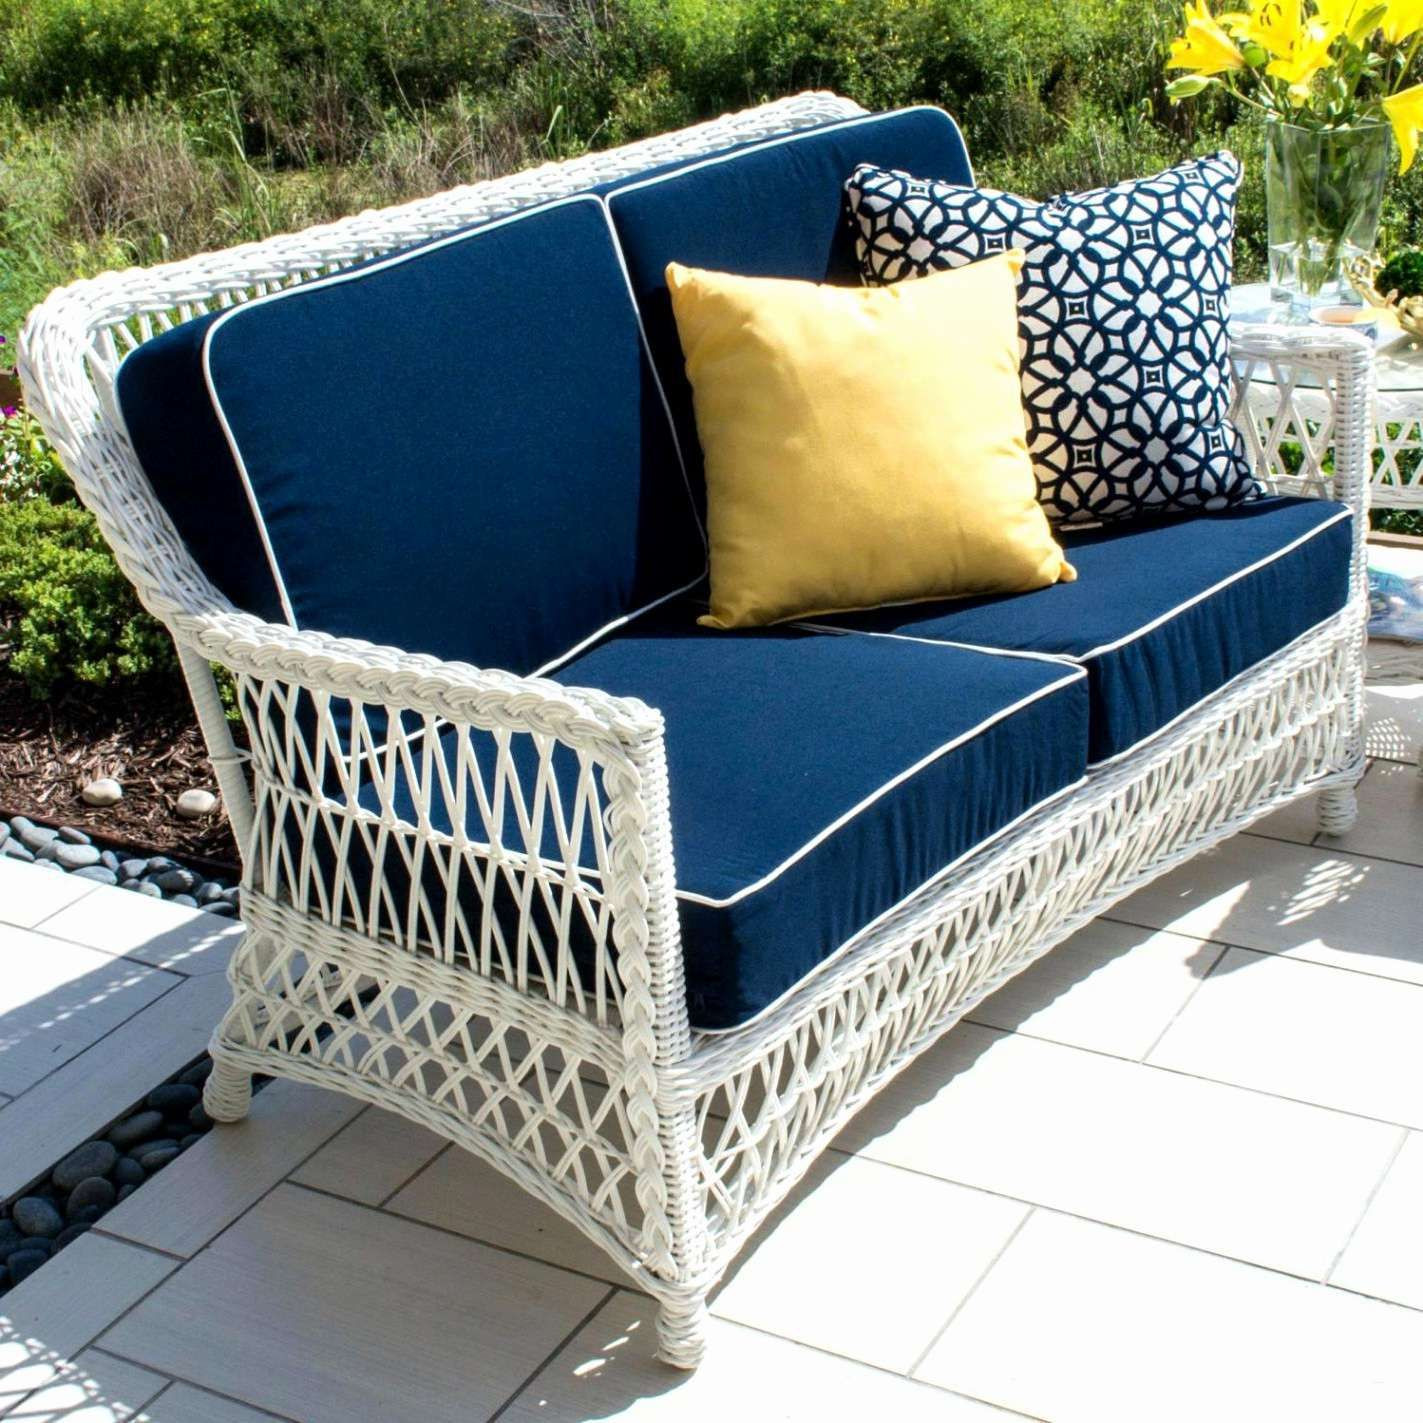 Full Size of Common Outdoor Beetles Garden Manteau Betty Barclay Bett Hund Kitchen Better Homes And Gardens Flying Education Puredown Collection Cushions For Betta Pond Wohnzimmer Outdoor Bett